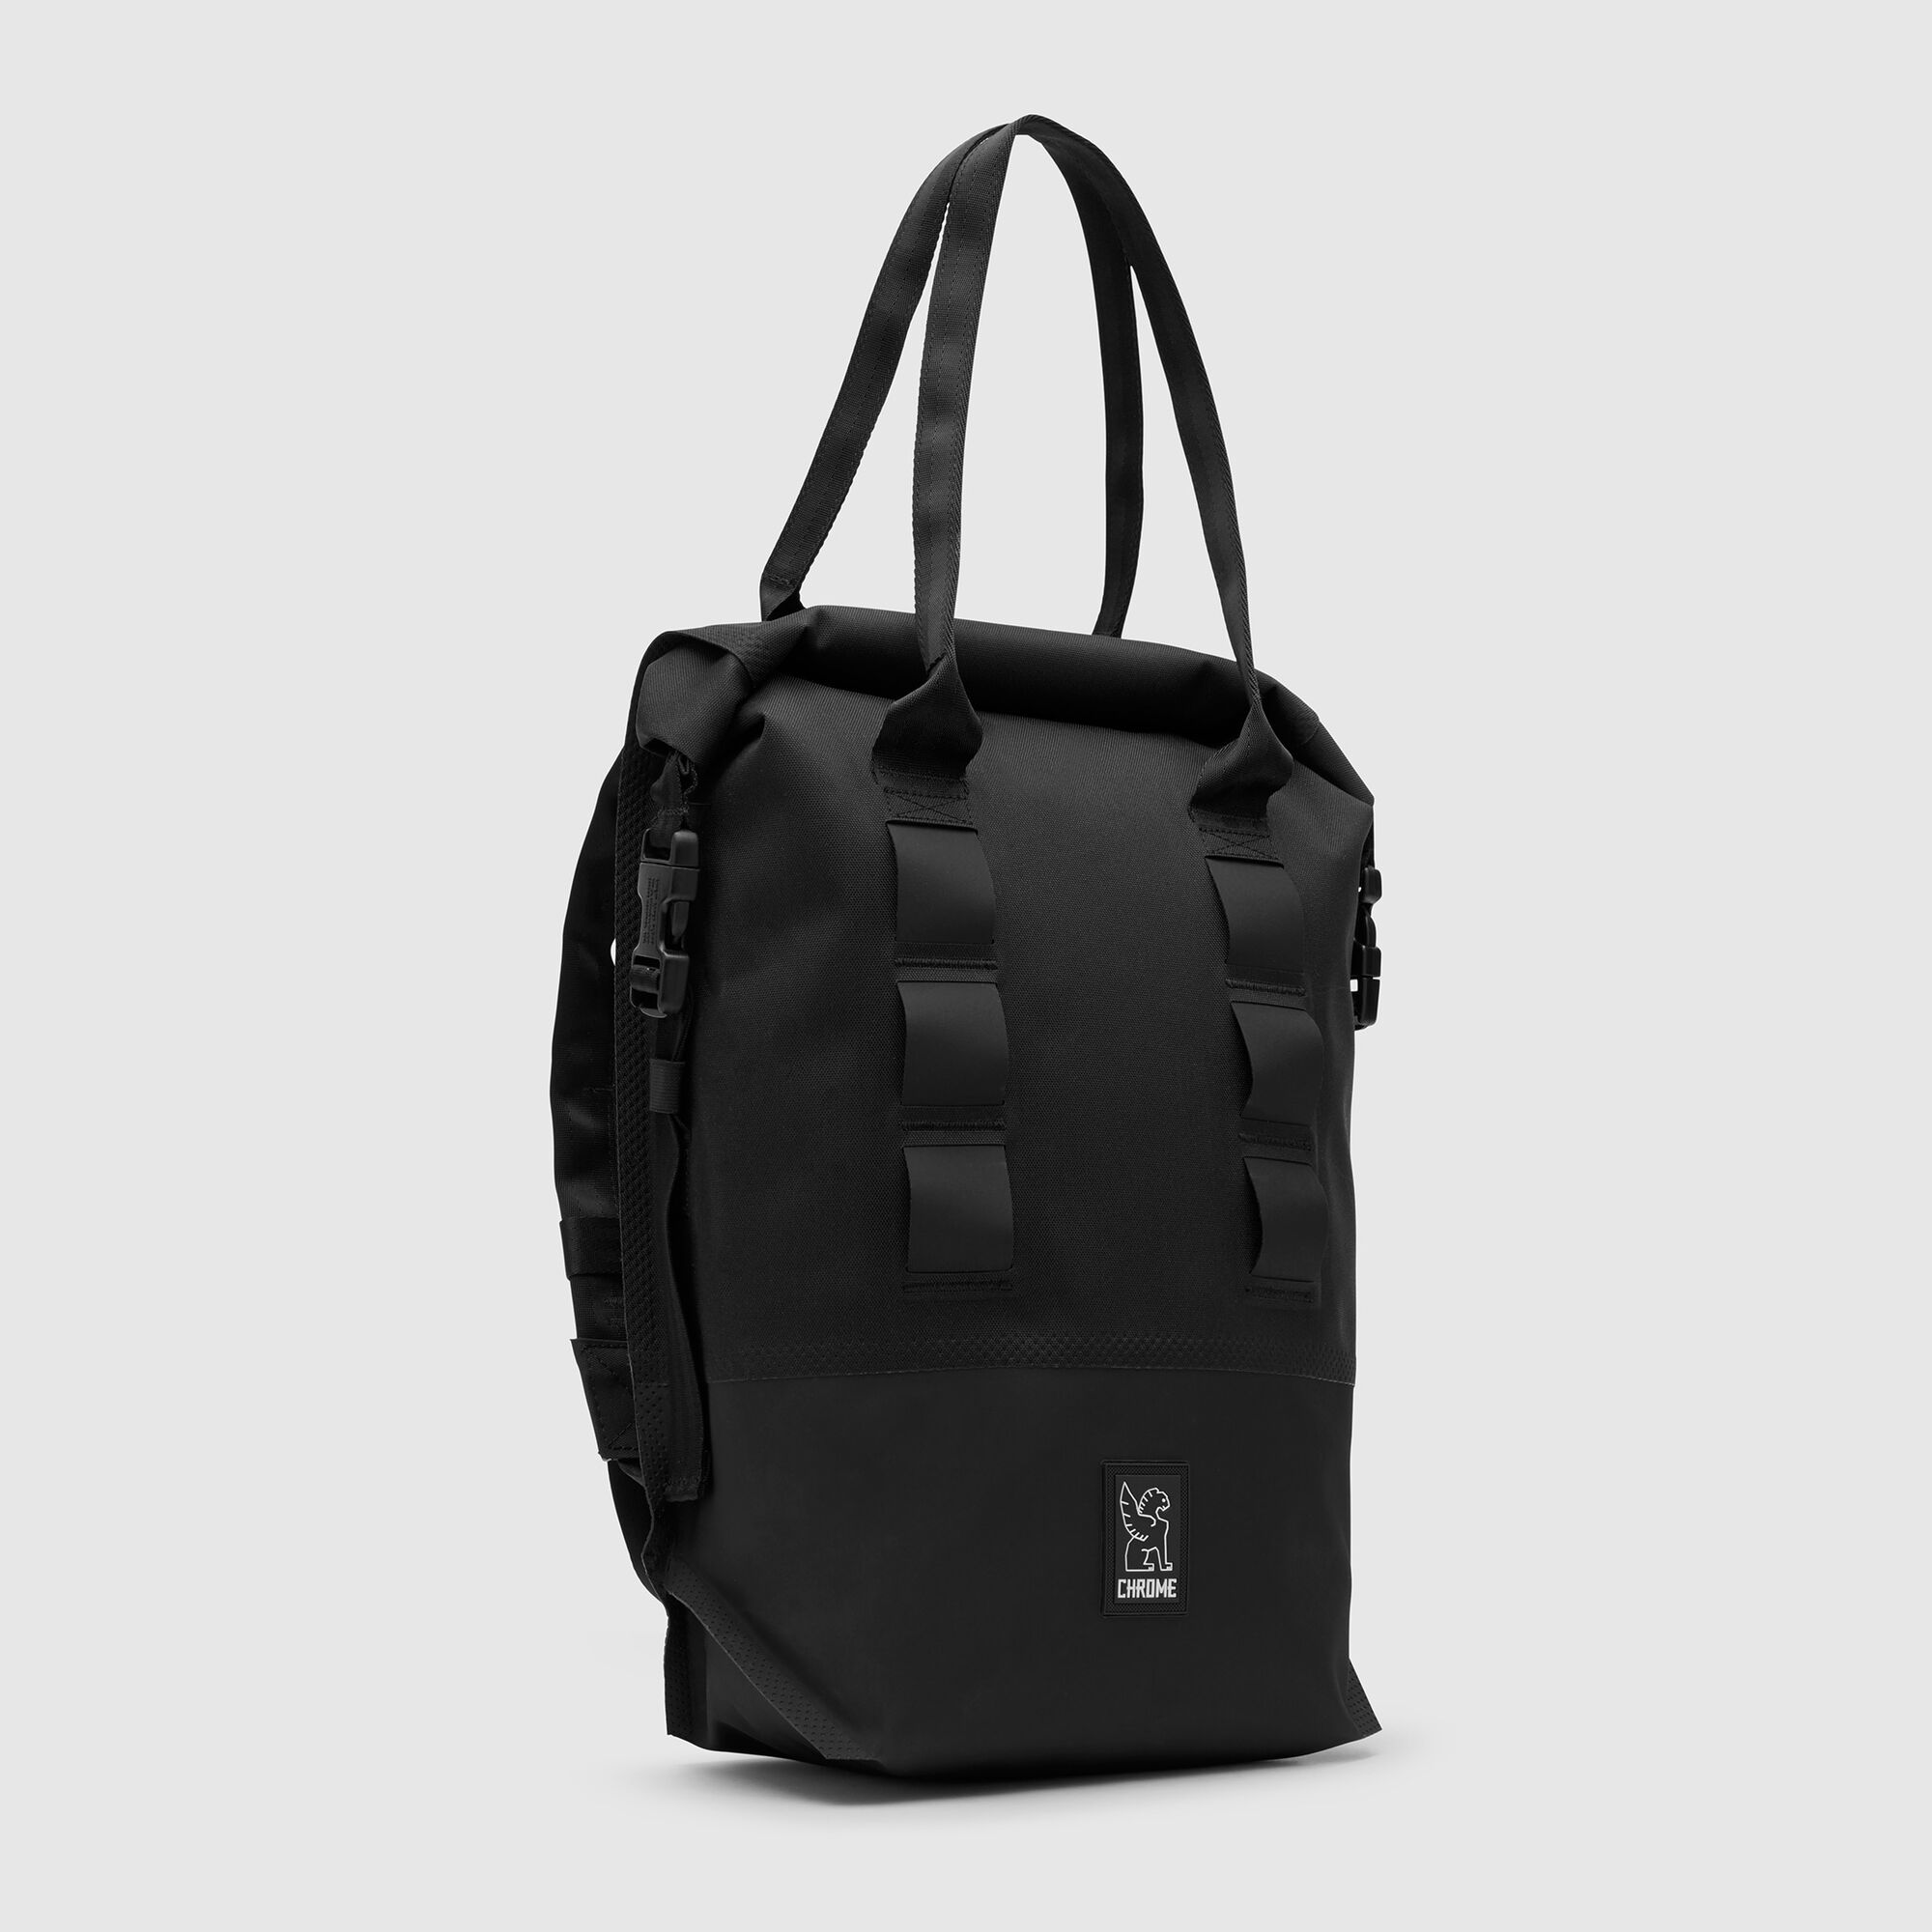 Urban Ex Rolltop 18 Backpack In Black Small View